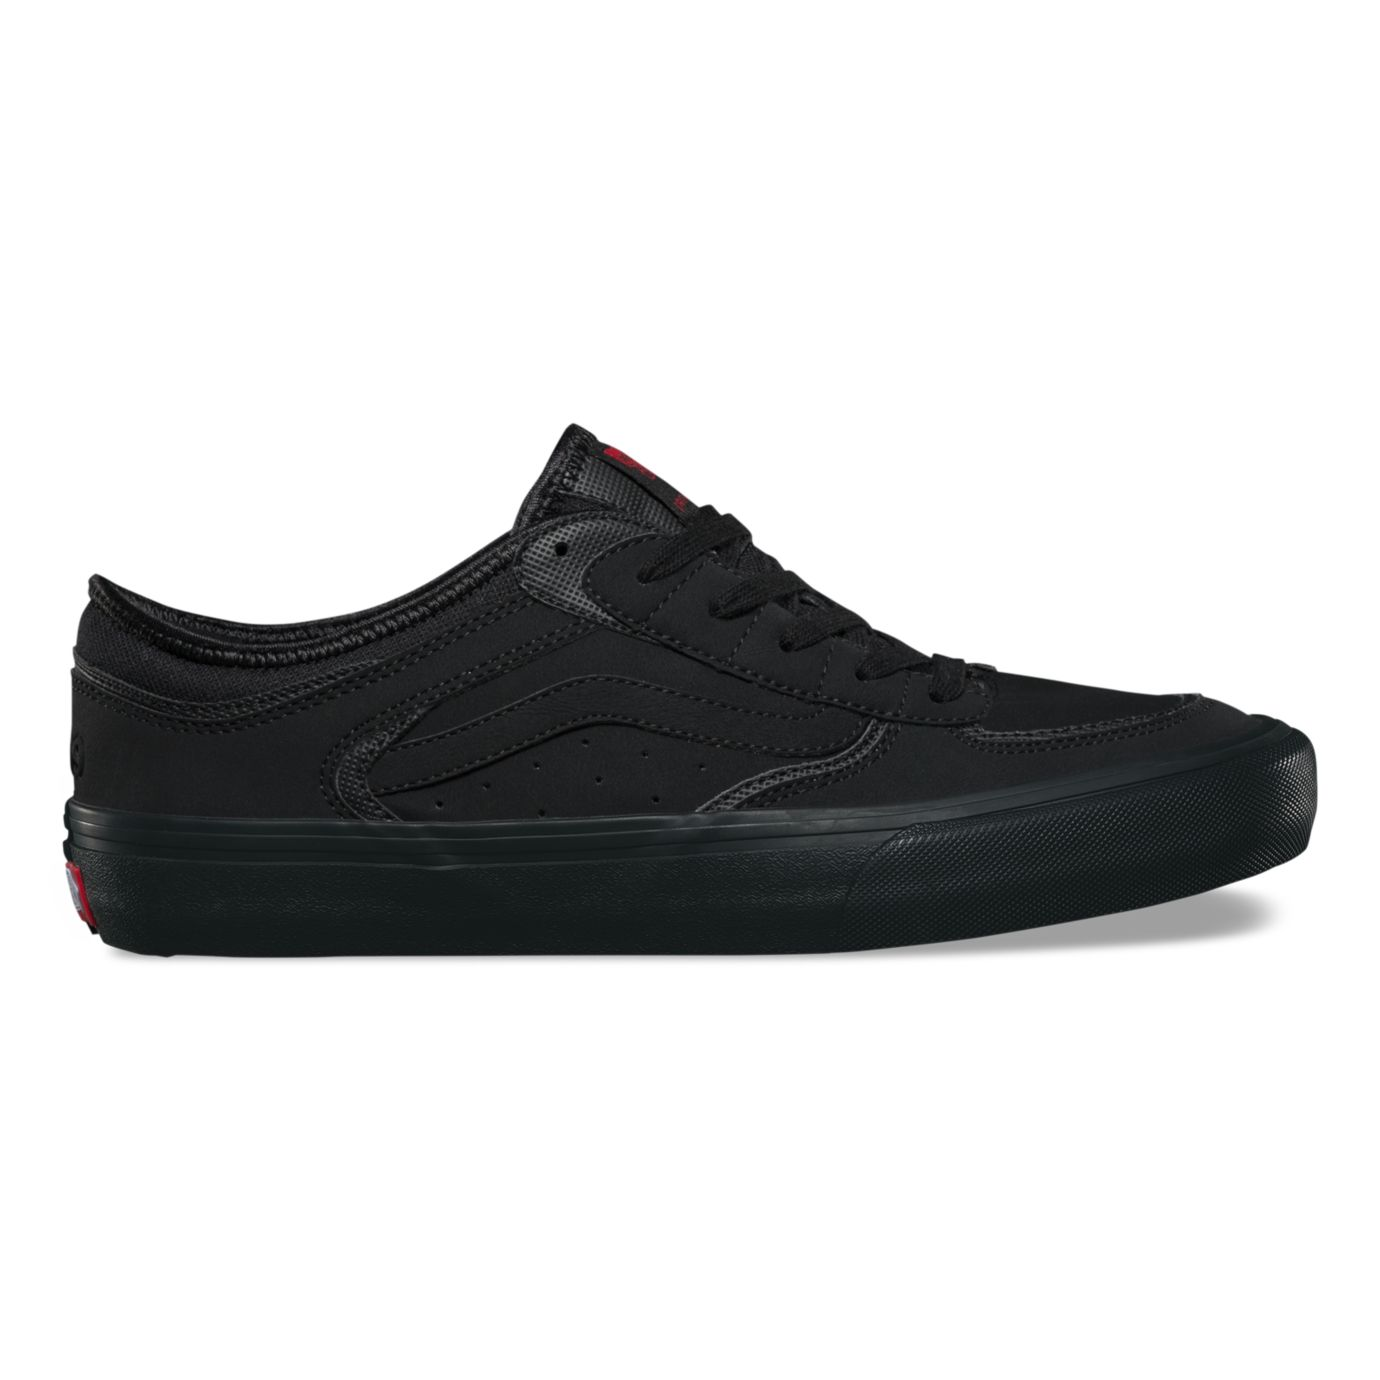 7f6ef25d78 Vans Expands Geoff Rowley s Signature Footwear and Apparel Collection